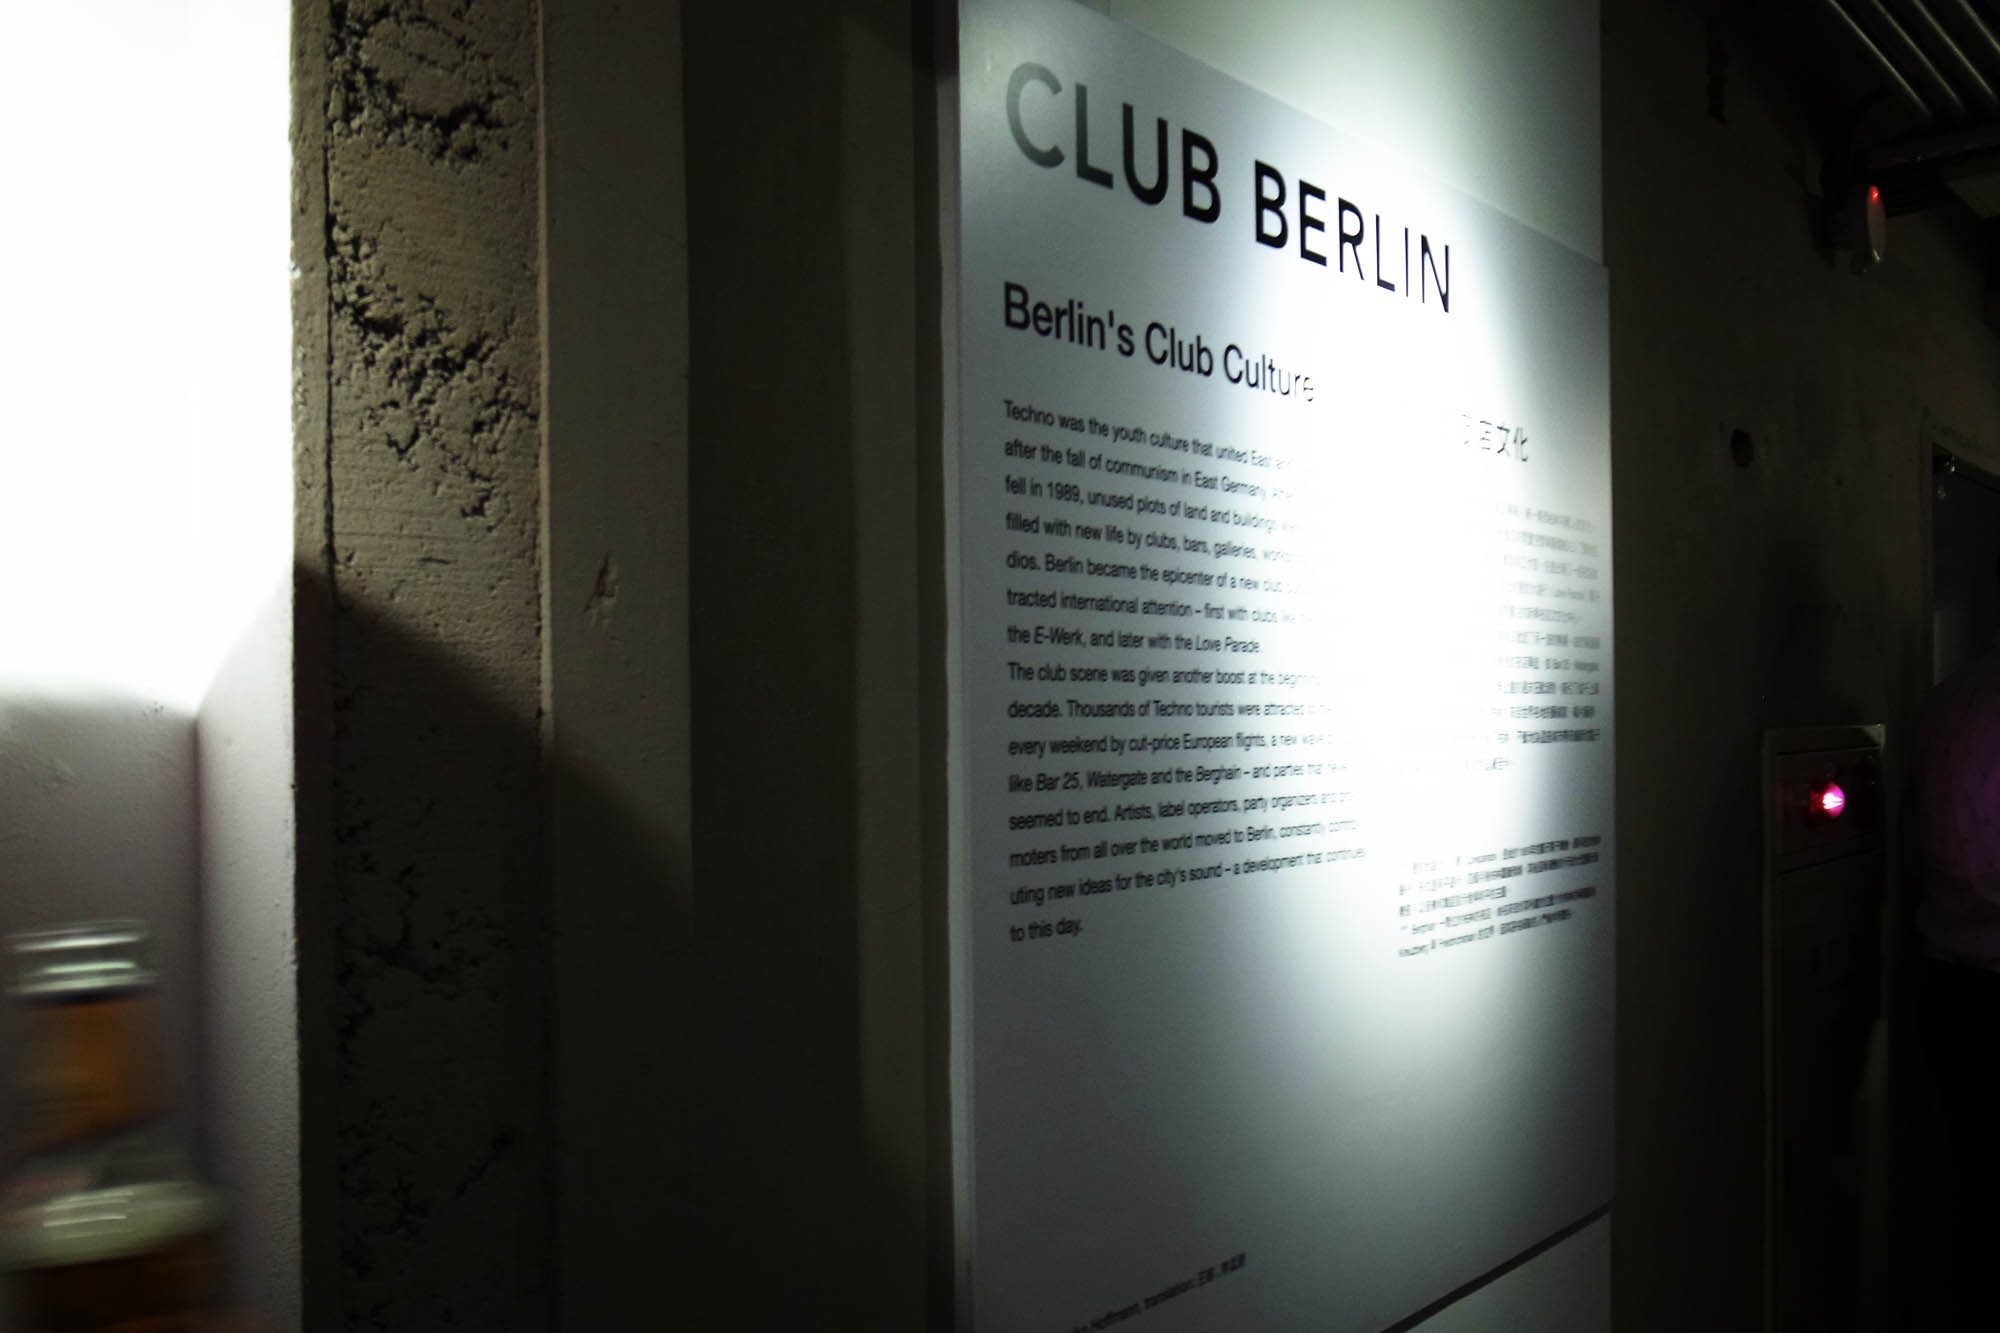 an-exhibition-of-electronic-music-and-photography-from-berlin-01